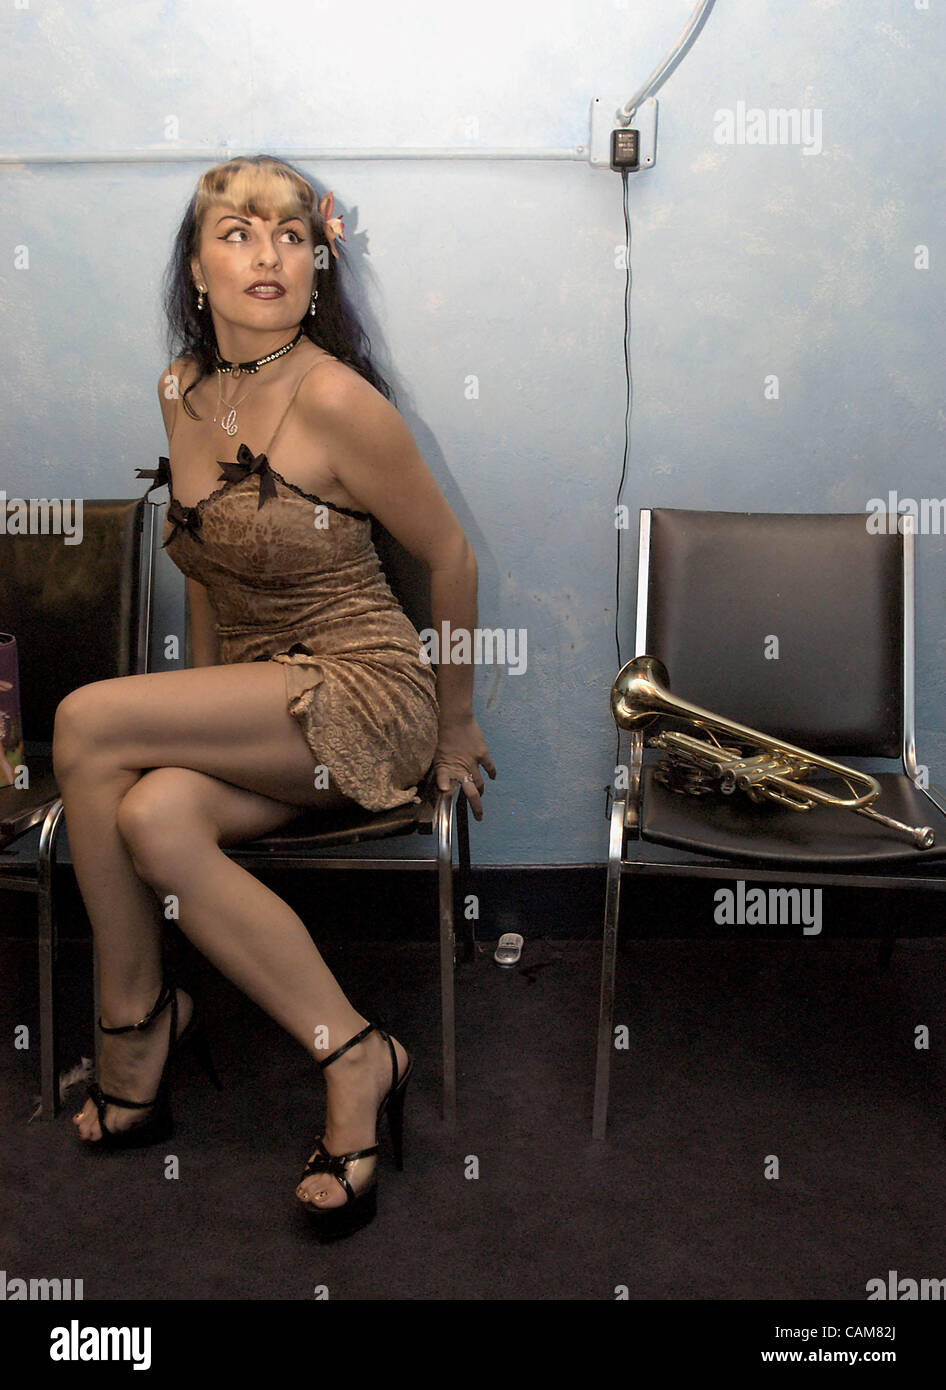 Oct. 11, 2003 - Hollywood, USA - Californian Charlotte La Belle, a multi-talented performer in her own right, waits - Stock Image